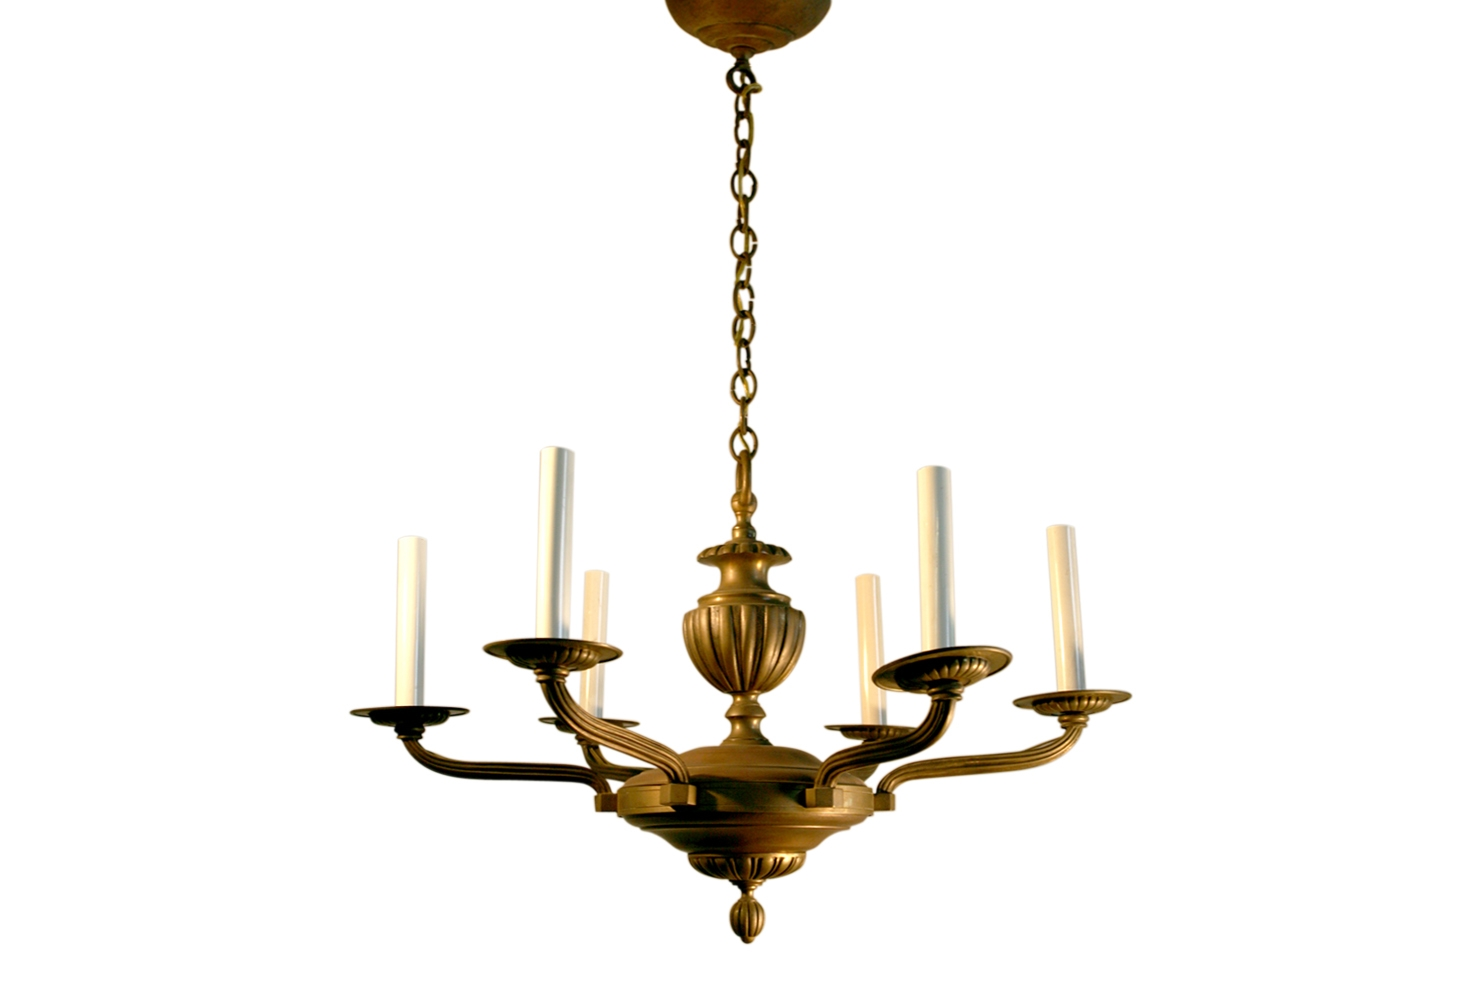 French Art Deco Chandelier Bronze Rhulmann Style Omero Home With Regard To French Bronze Chandelier (Image 10 of 15)